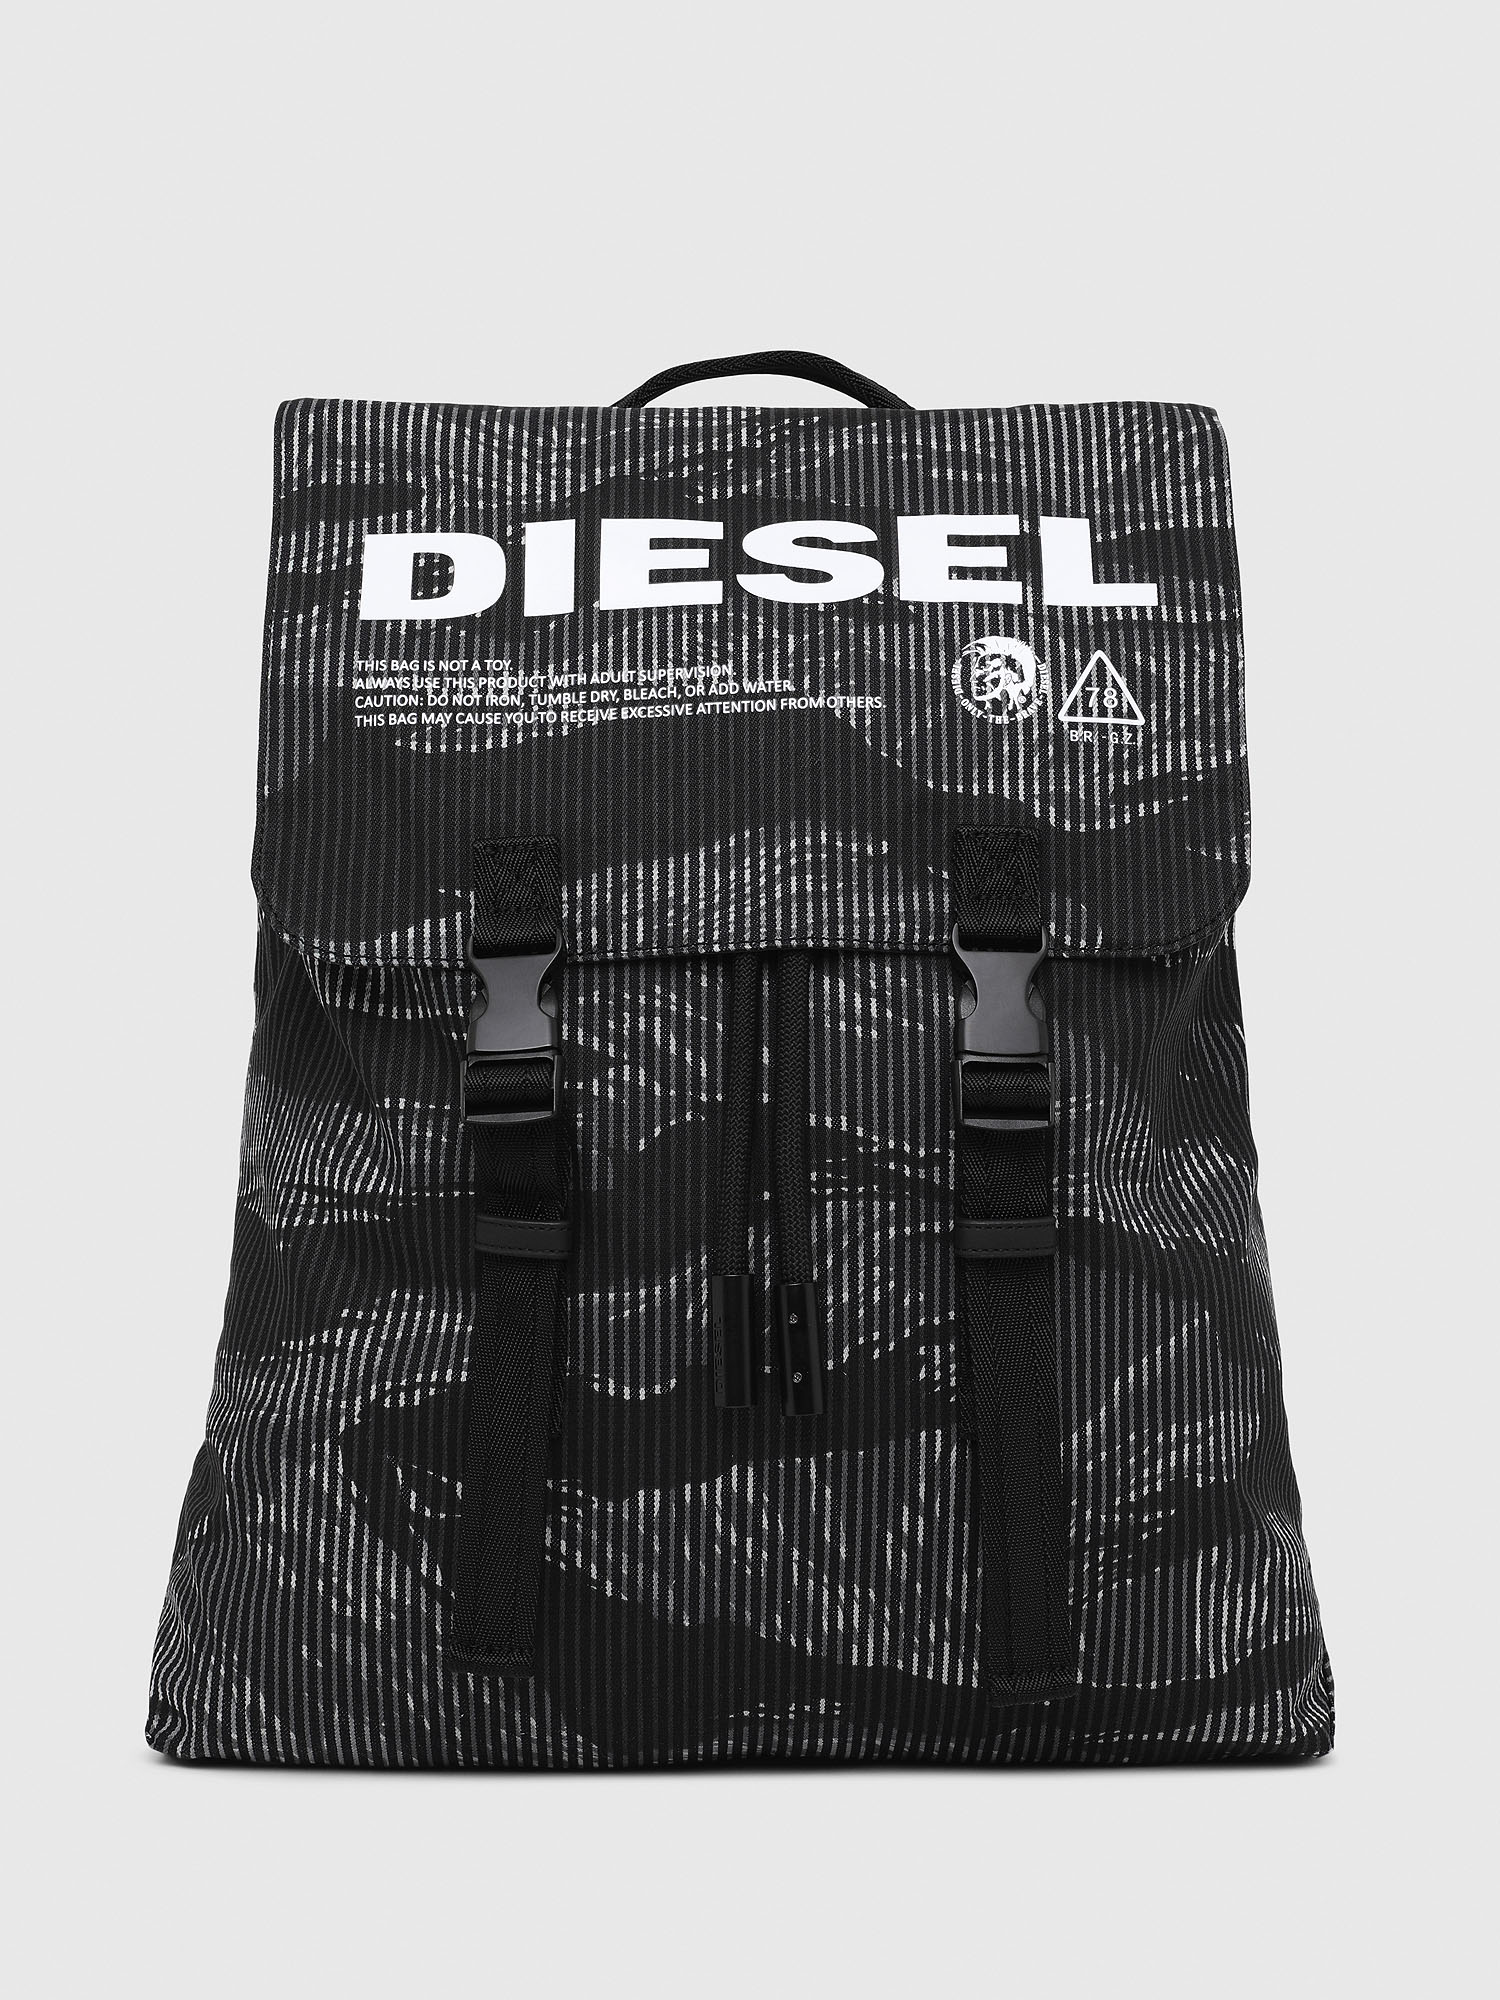 Diesel Backpacks P2893 - Black